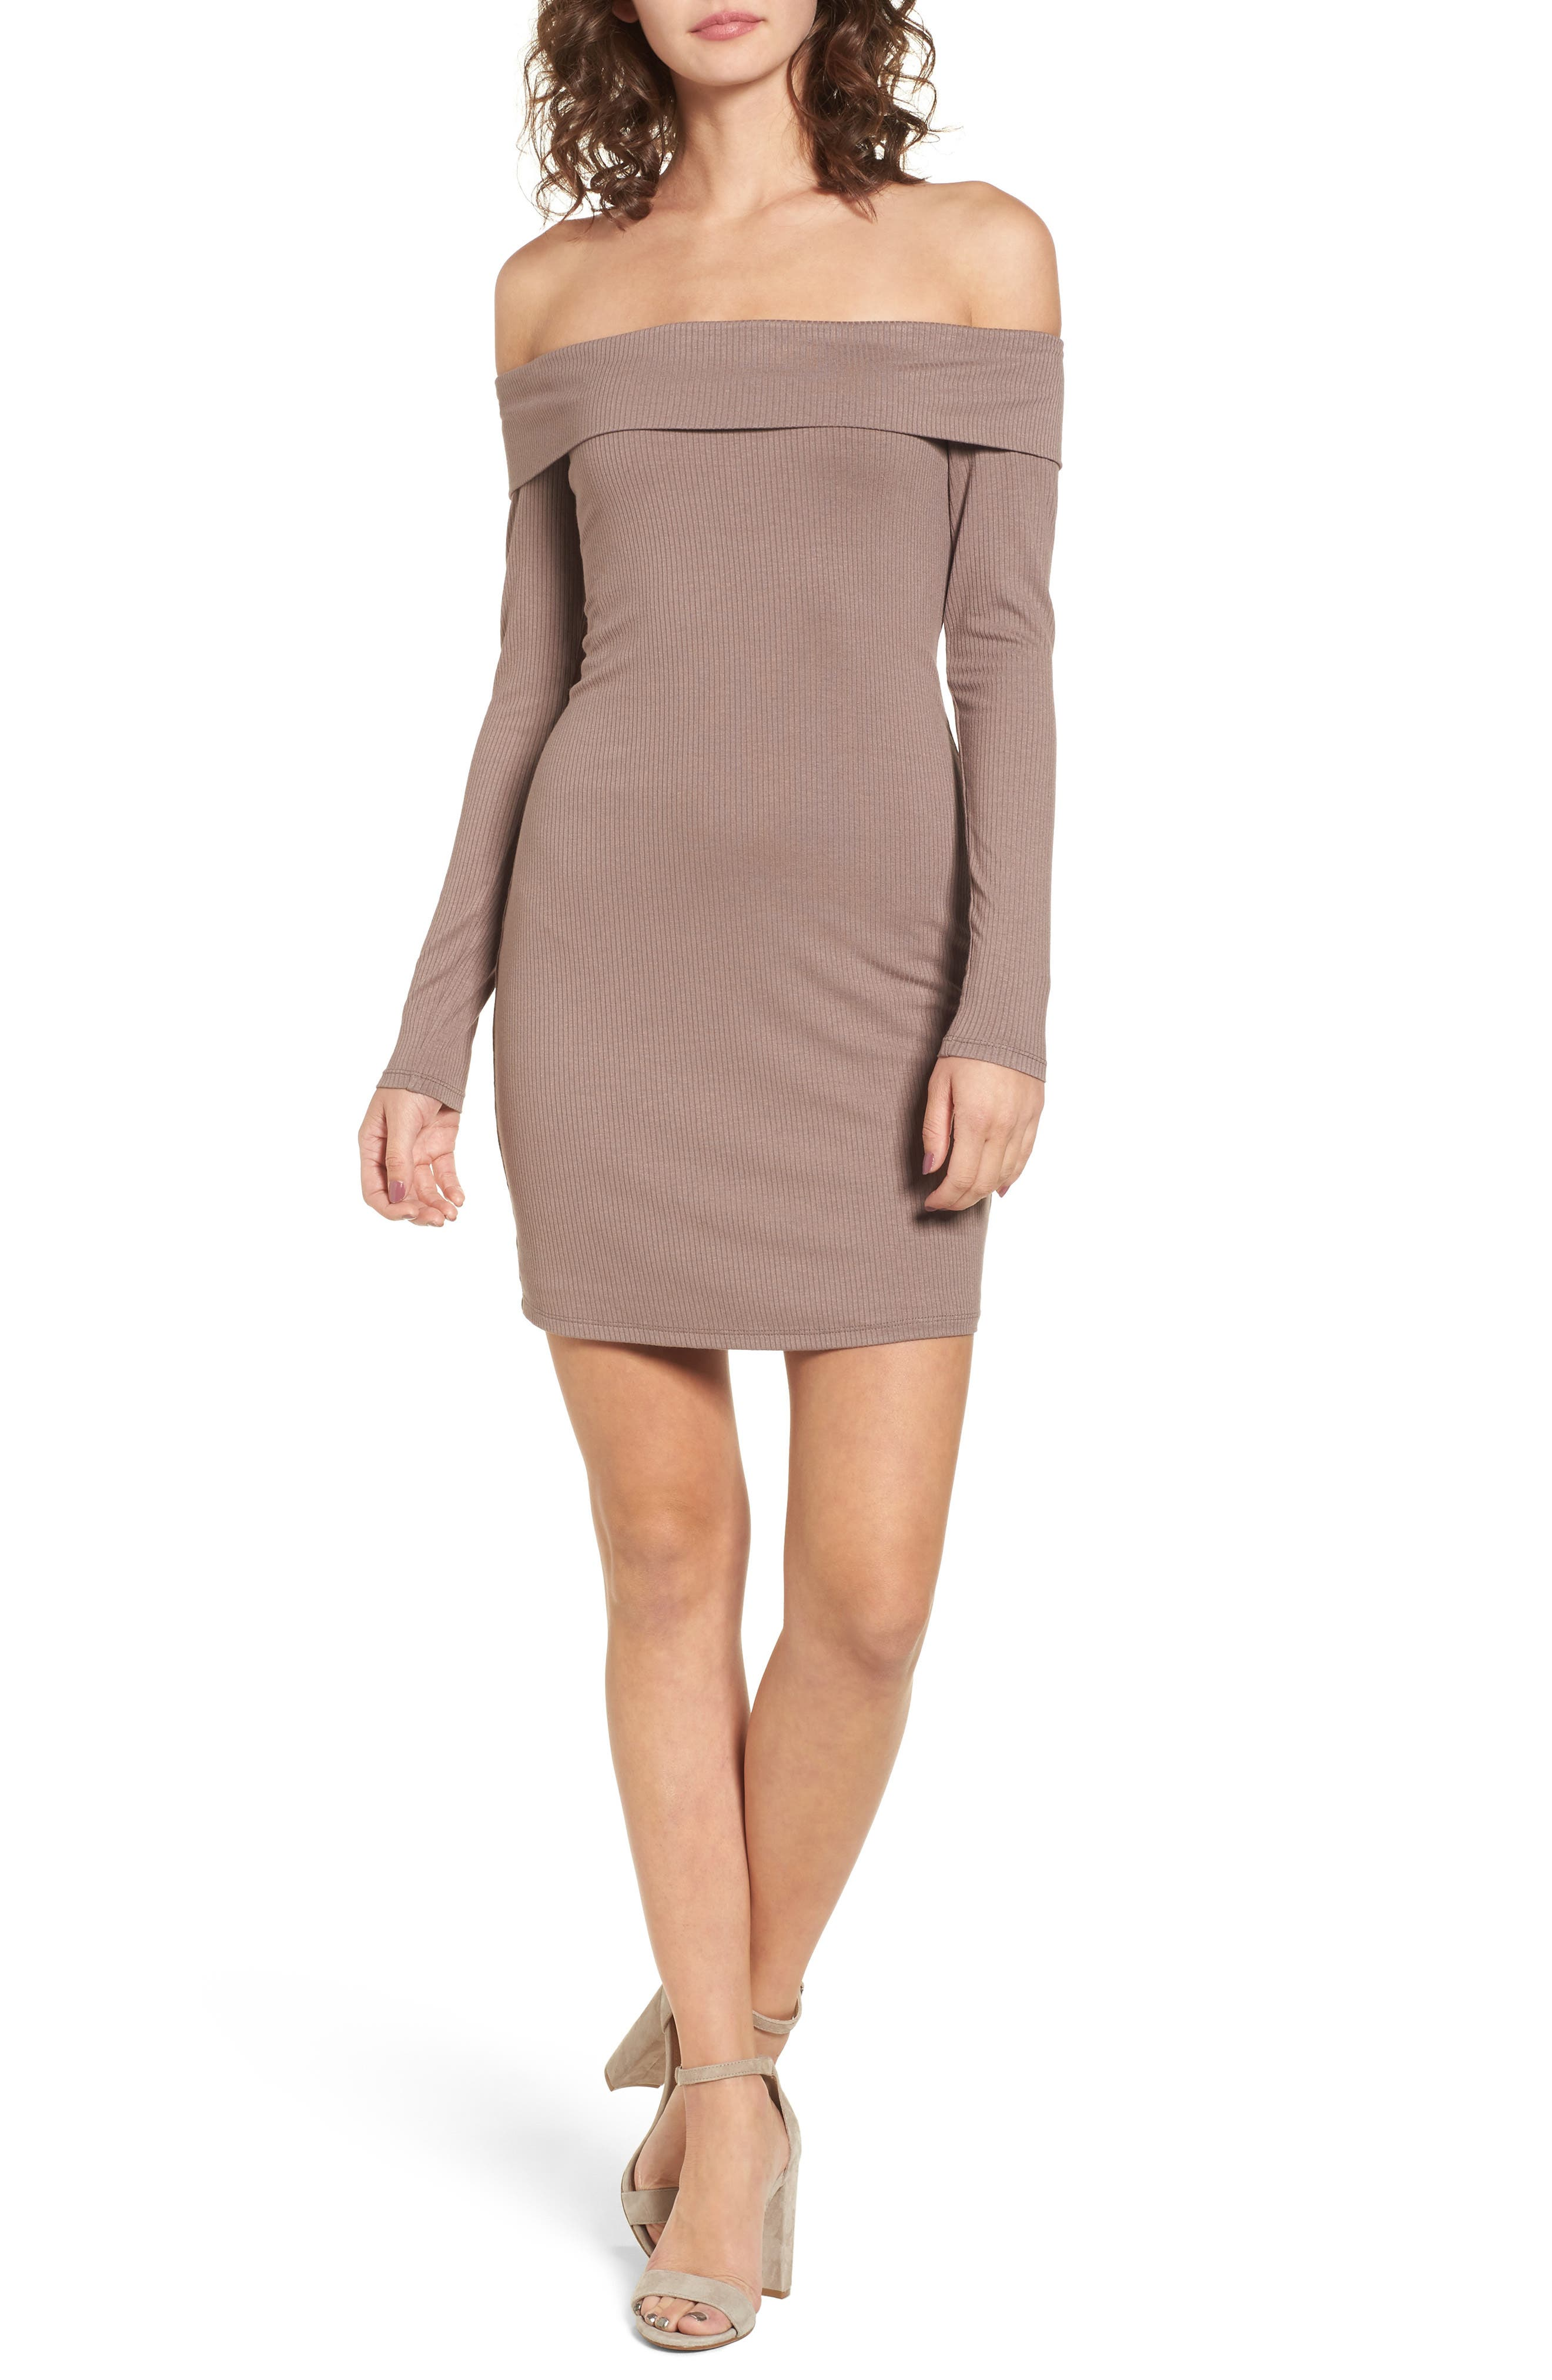 Privacy Please Silas Off the Shoulder Body-Con Dress